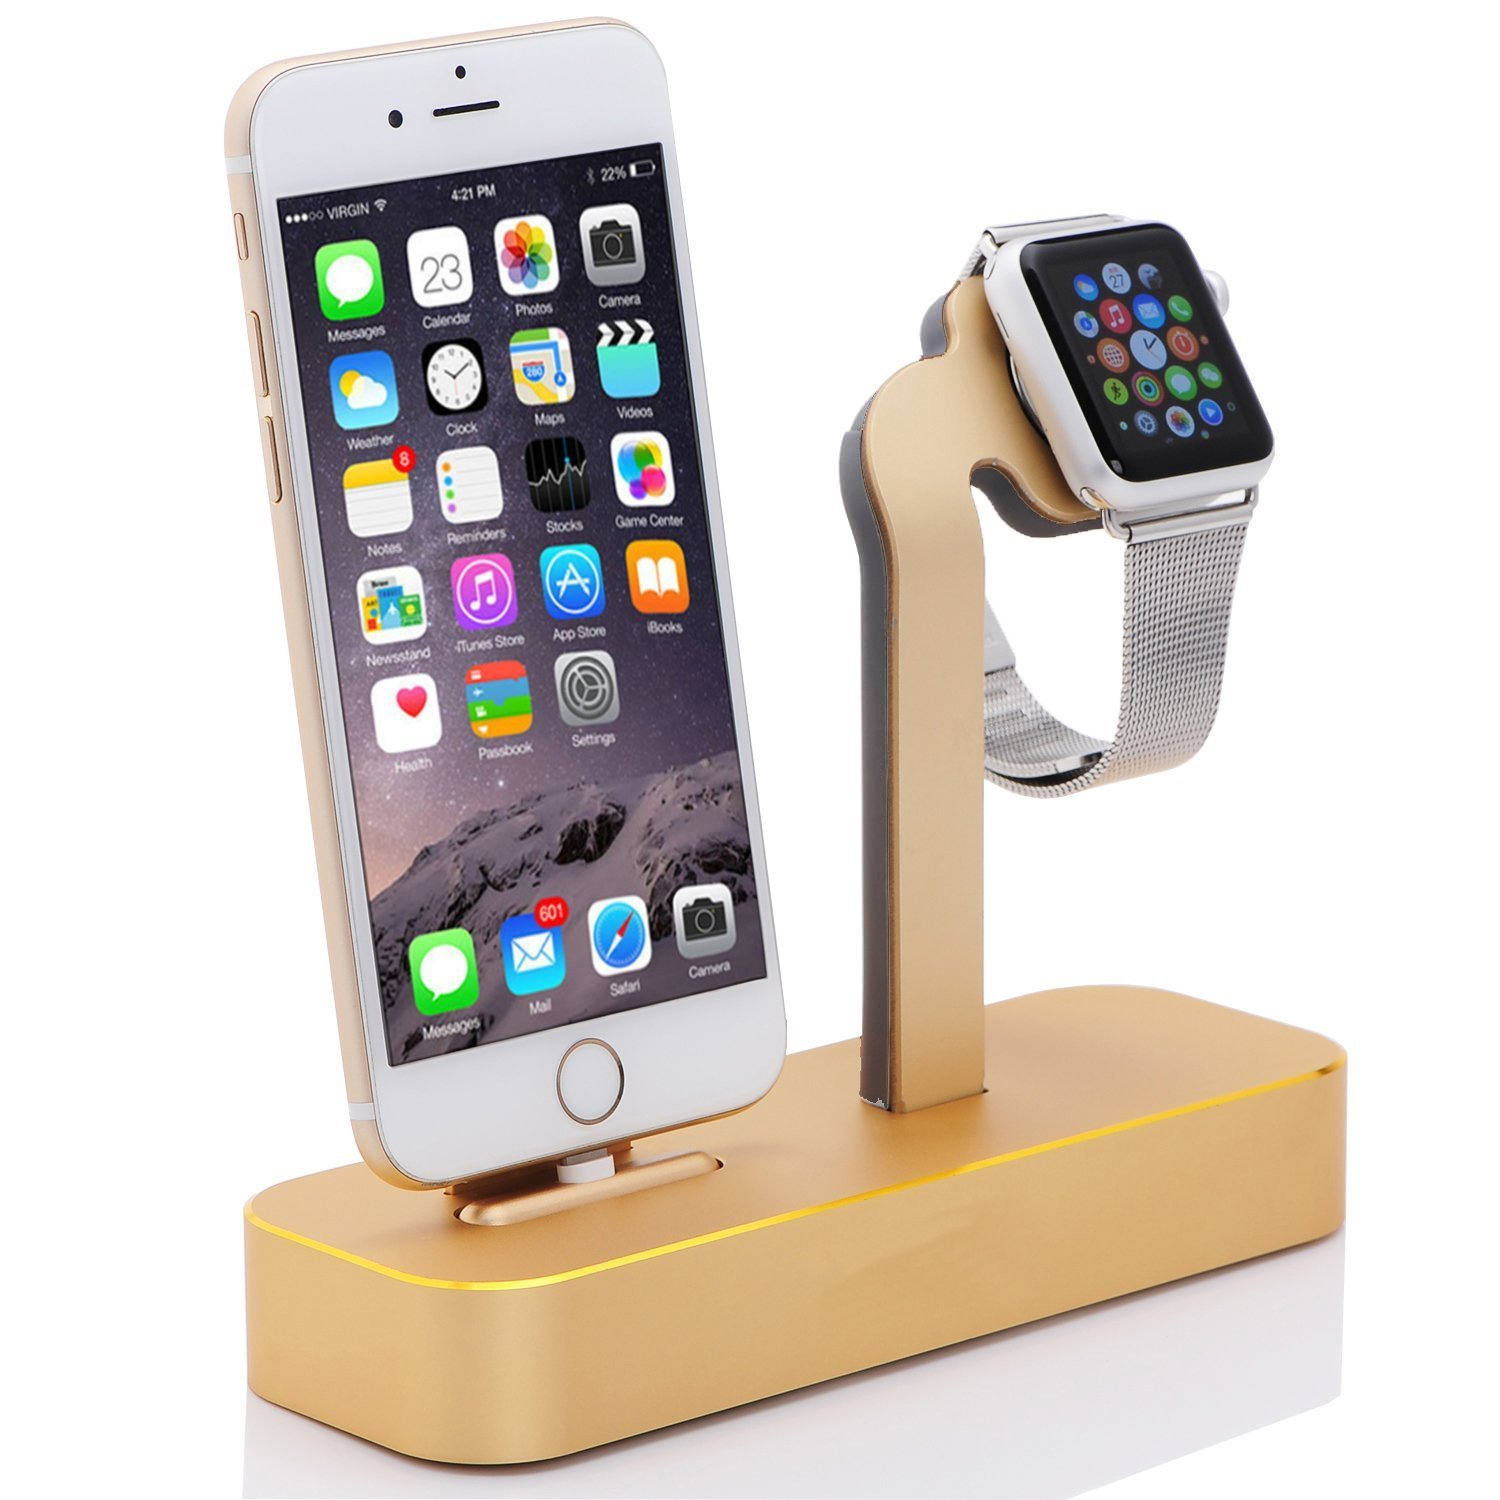 Apple Watch Series 2 Stand,MNever-Never 2 in 1 Aluminum Charging Stand Dock Station NightStand Cradle Holder for Apple Watch & iPhone 7 SE/5/5s/6/6S/Plus (Golden)